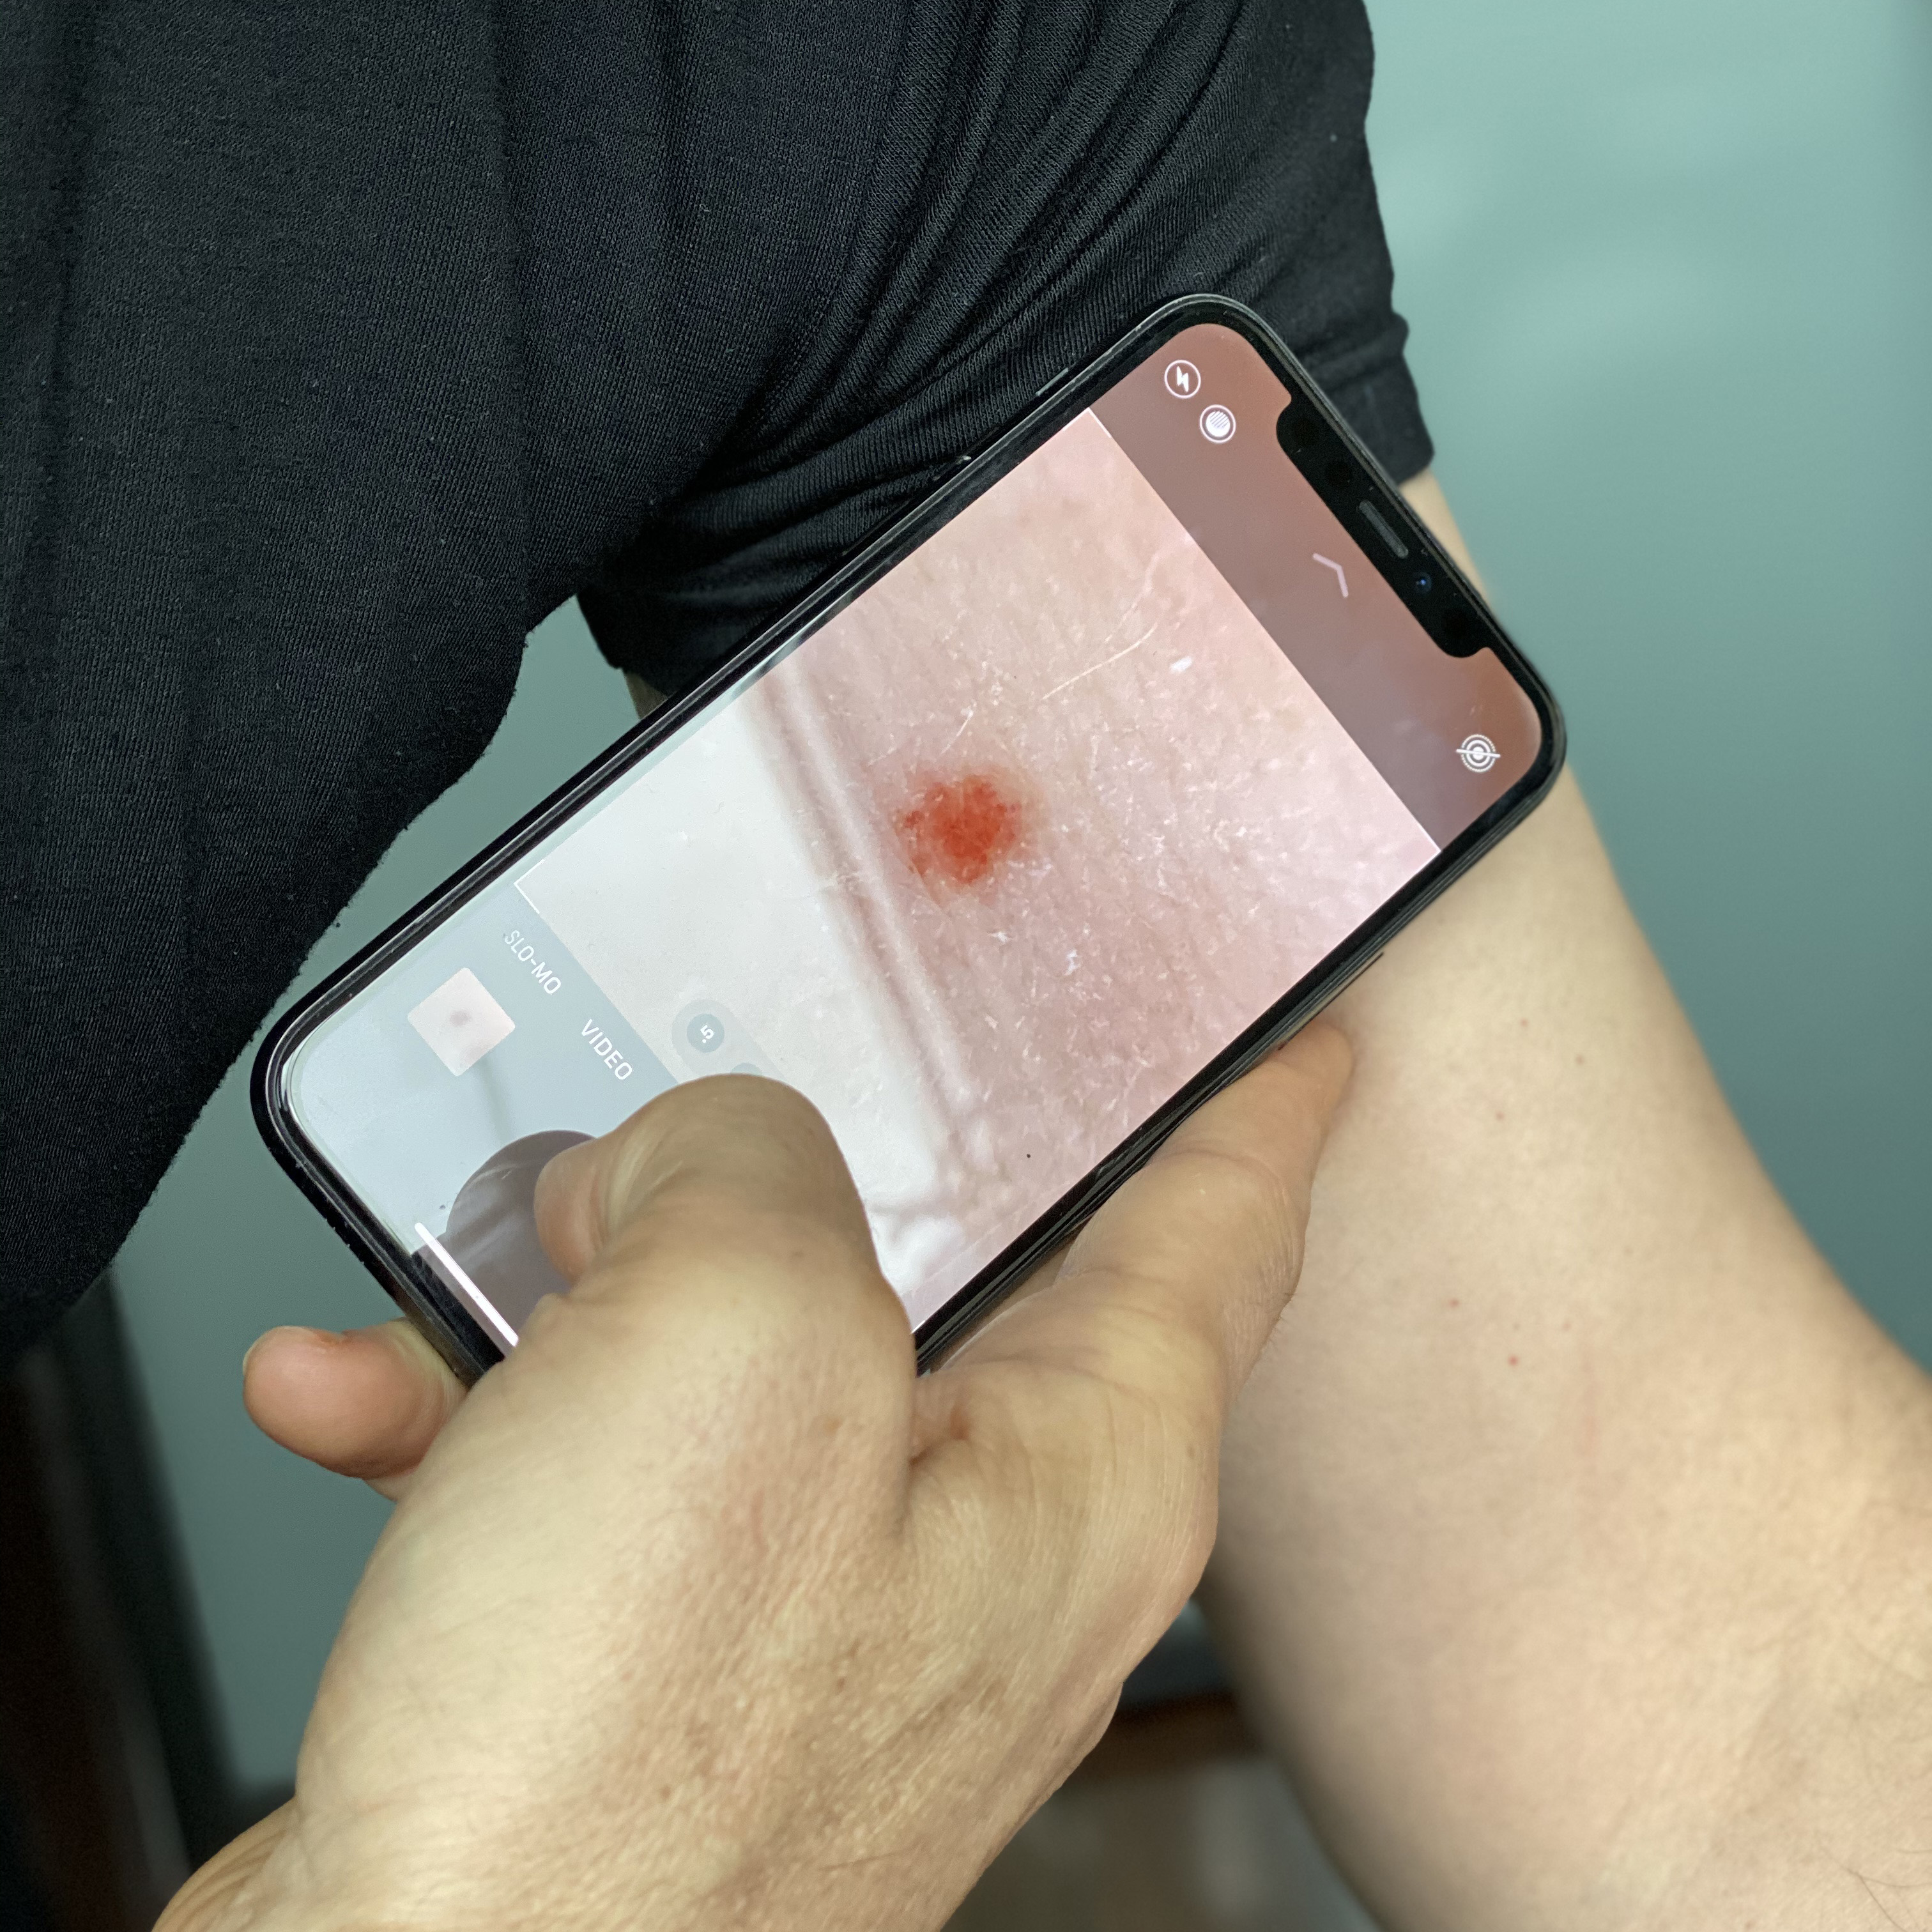 A man taking a photo of a mole on his arm, using a smart phone